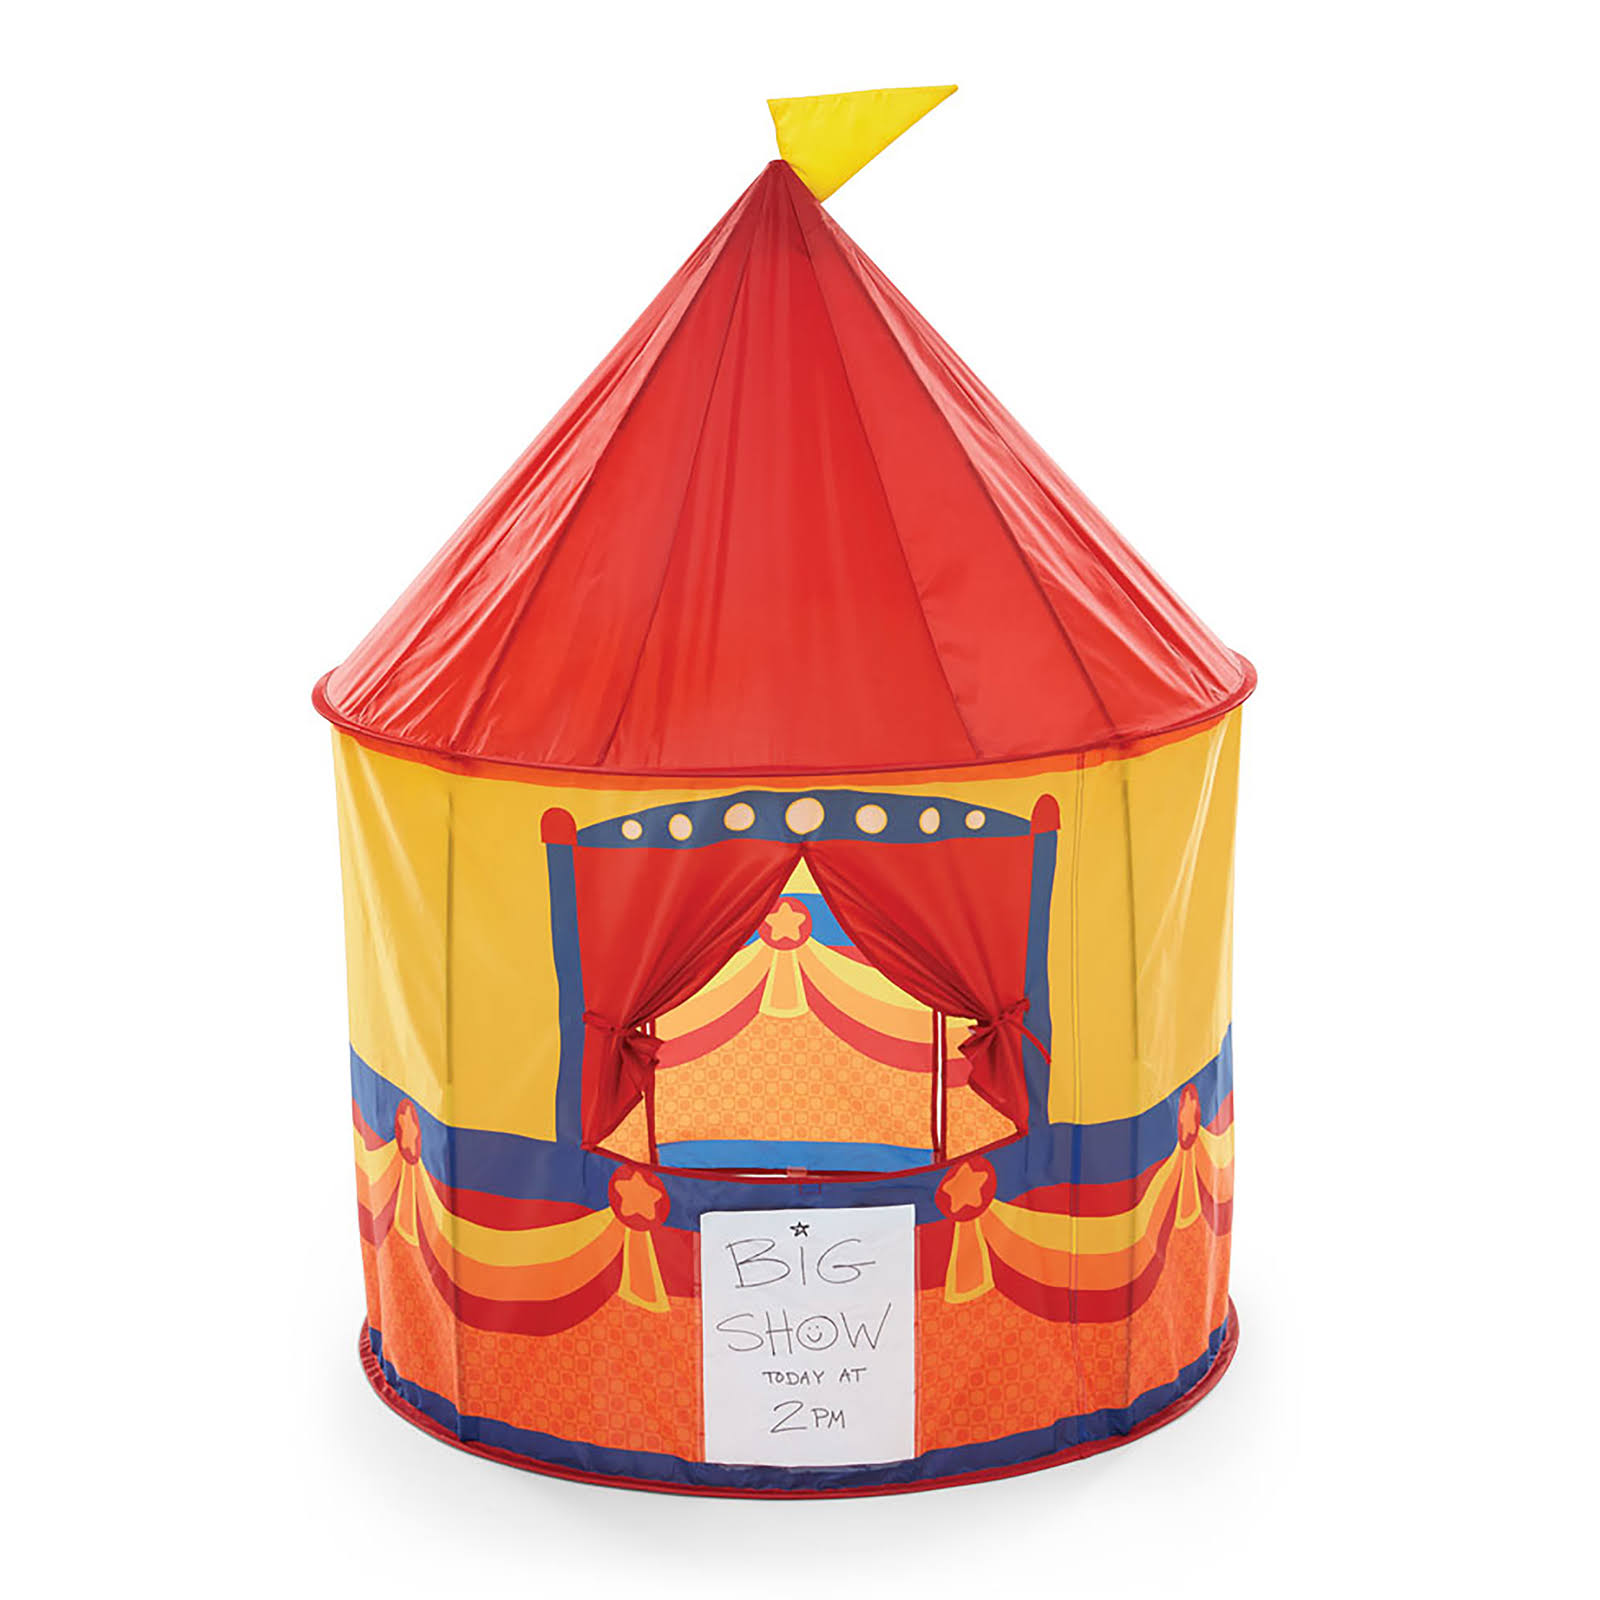 Kidoozie Pop-Up Theatre Tent Toy - Multi-Colored